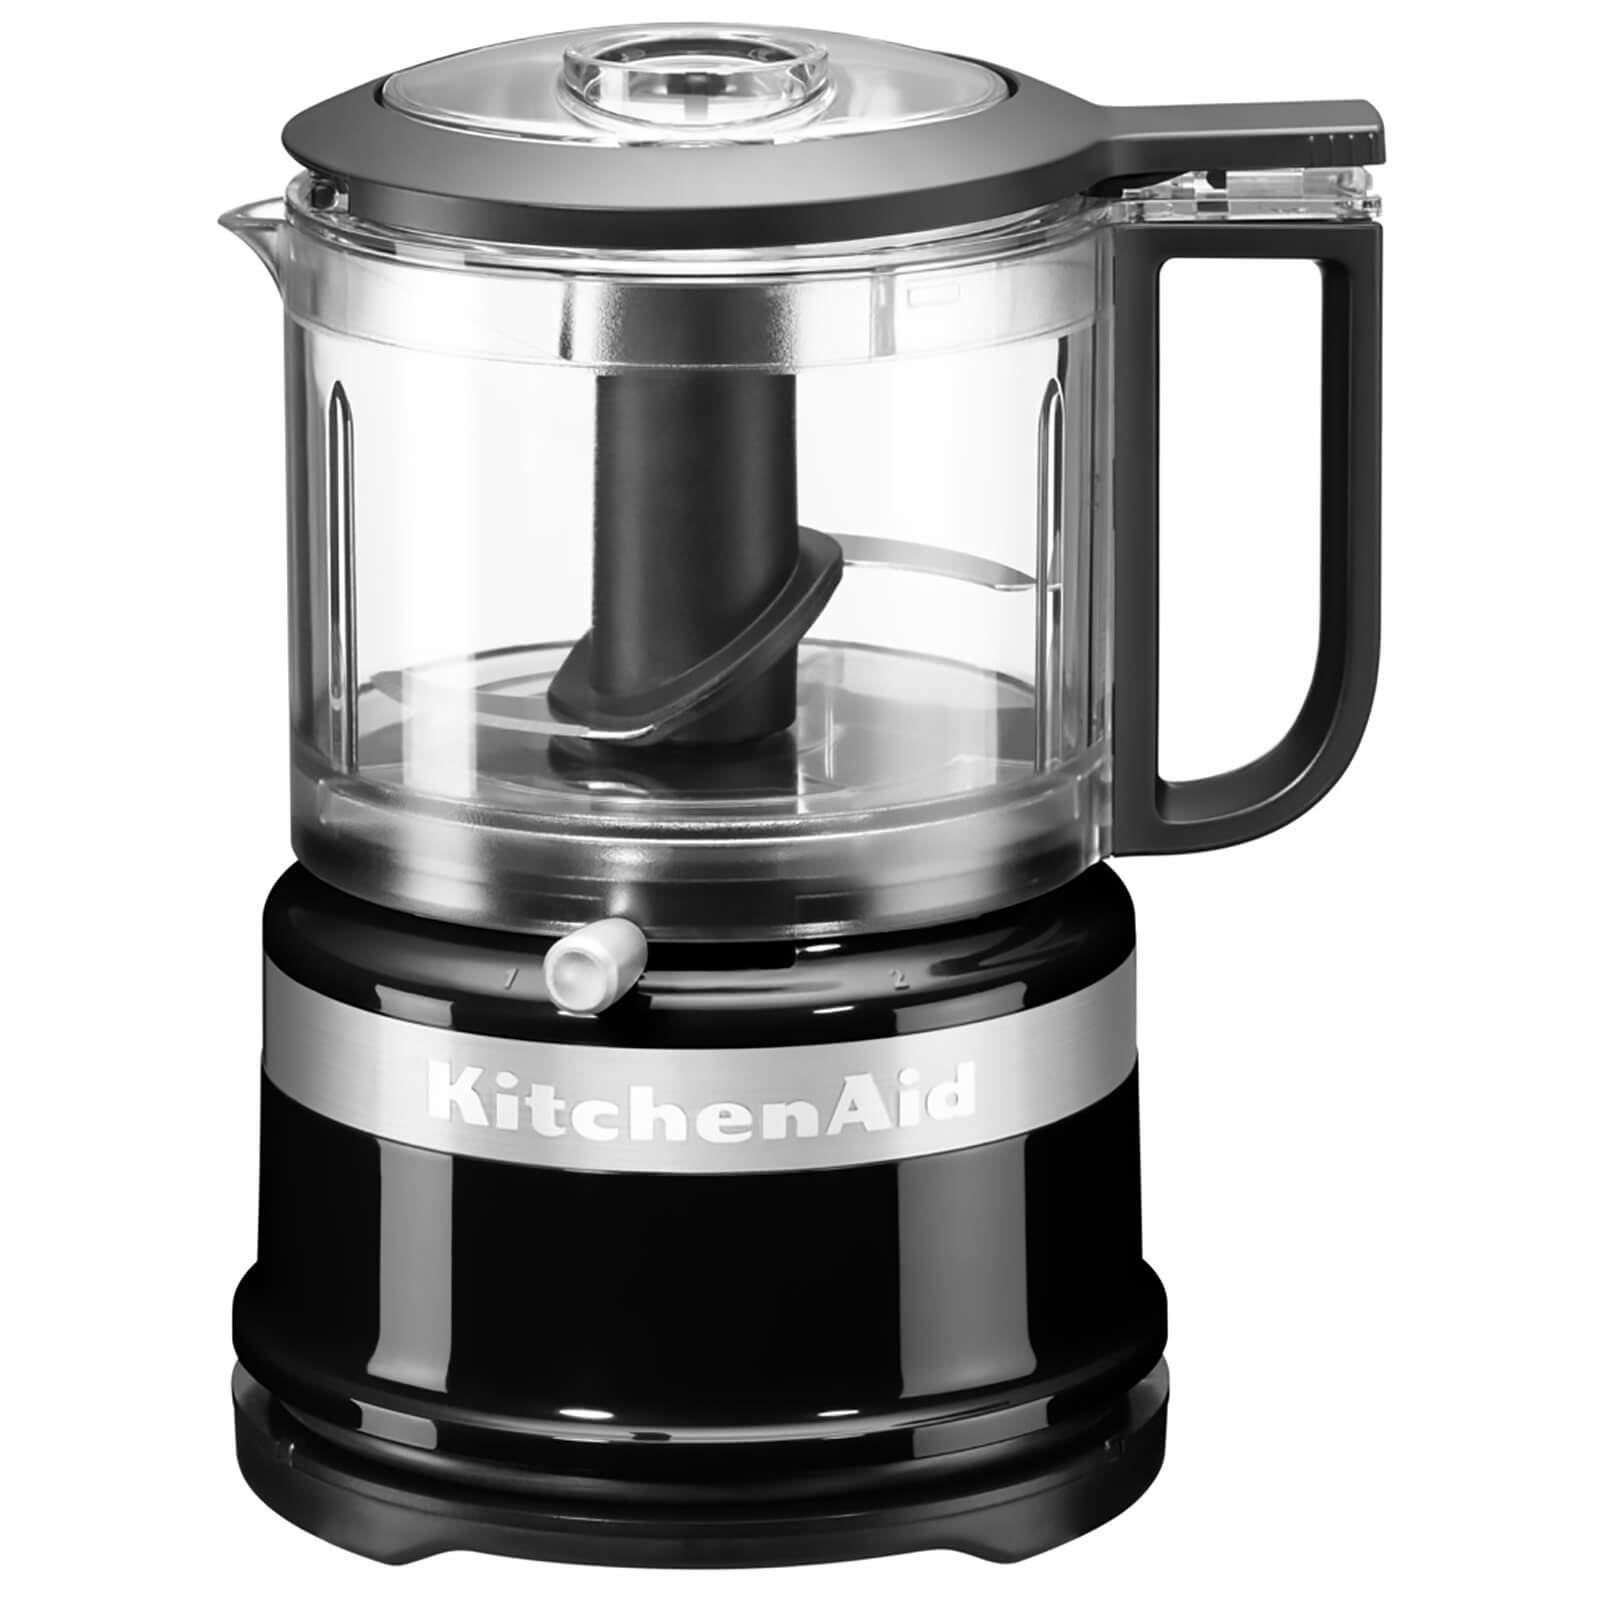 KitchenAid 5KFC3516BOB Mini Food Processor - Onyx Black